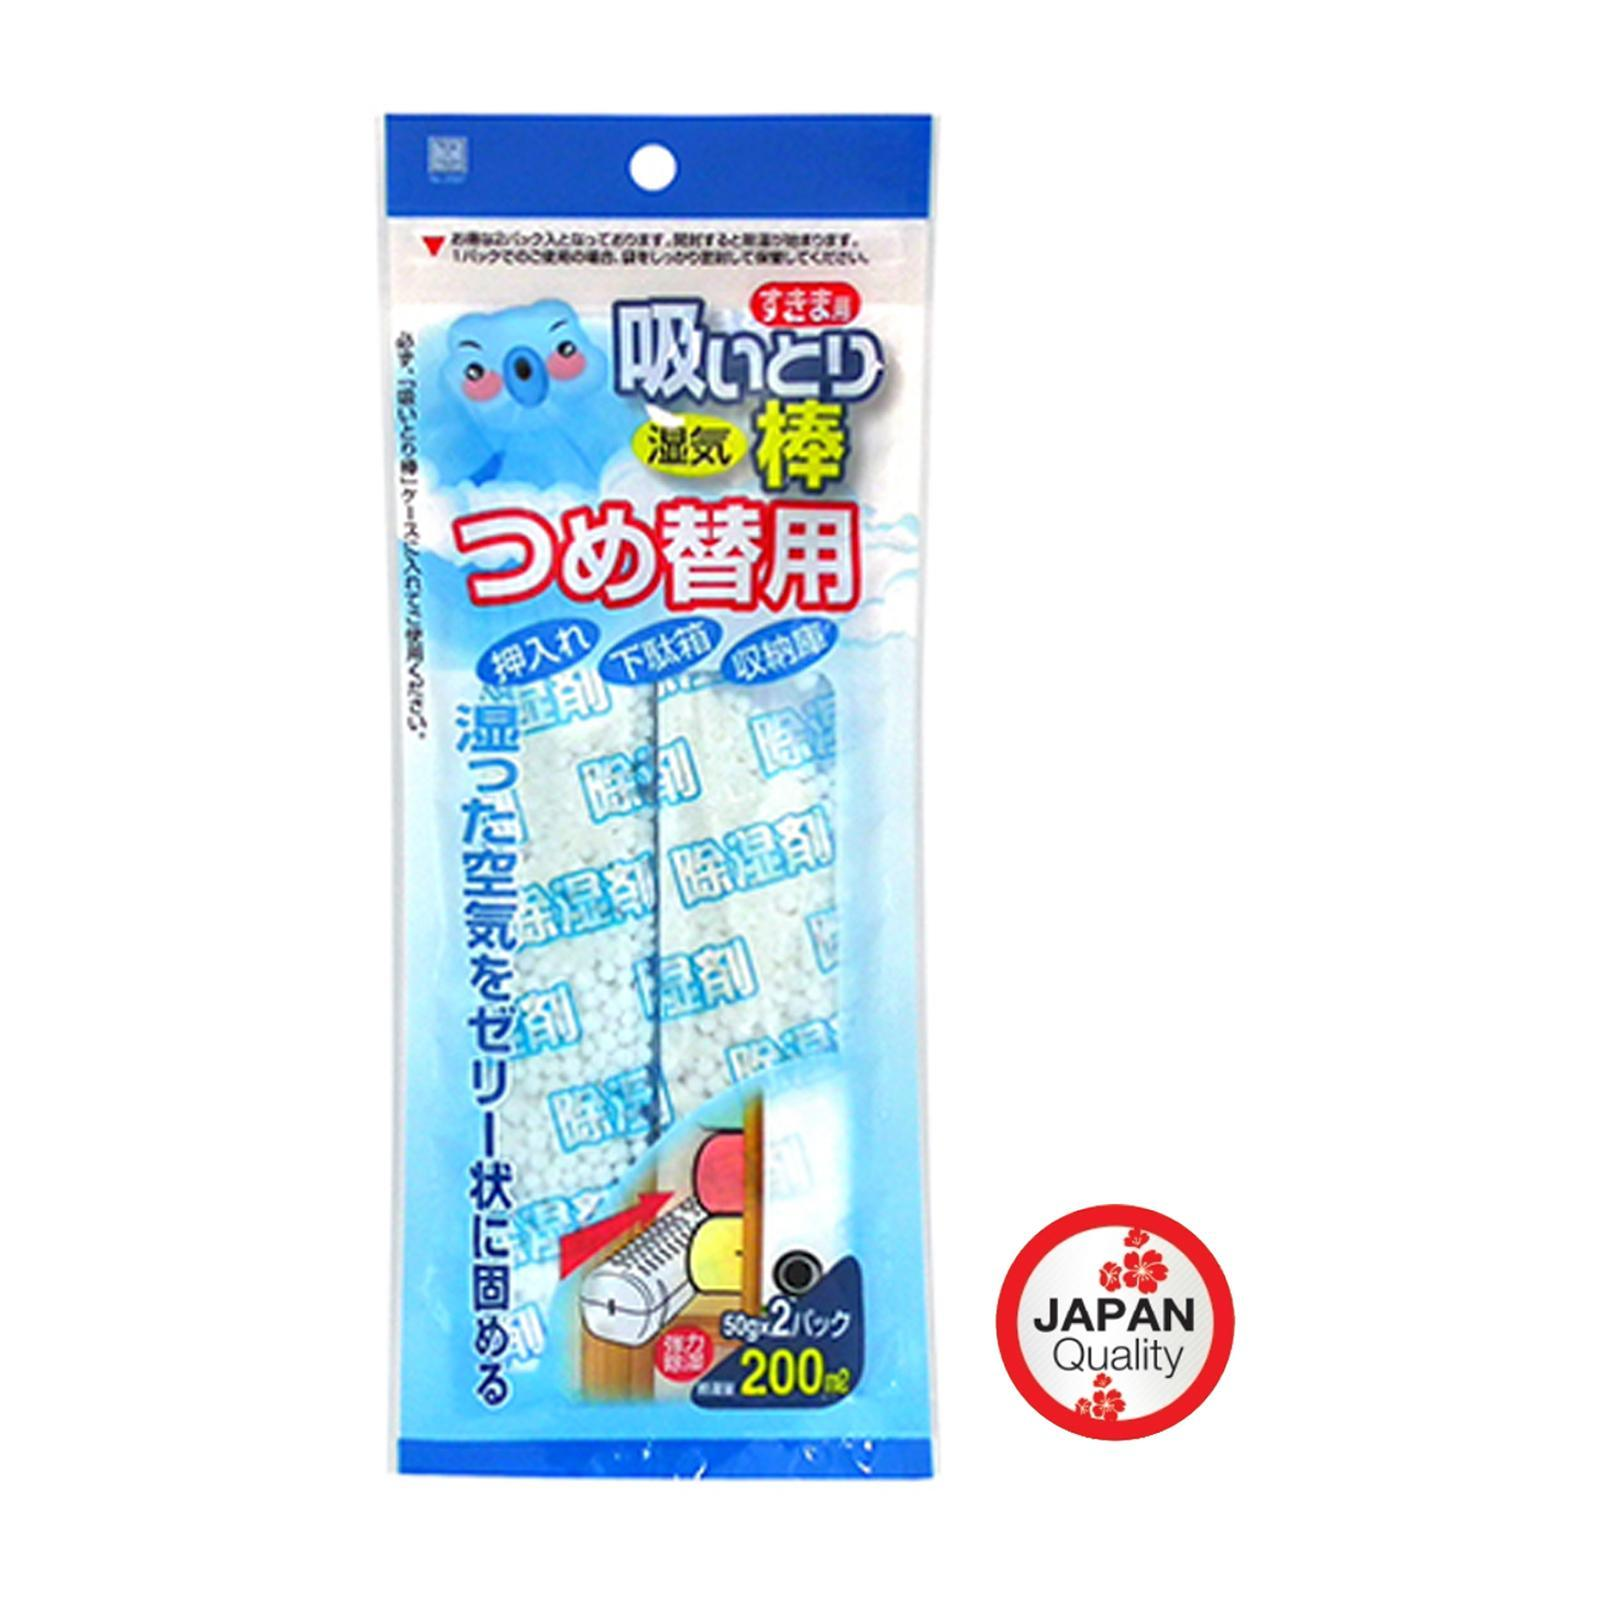 Nomi - Household Sucking Sticks For Refilling Gaps 50 G X 2 Packs Dehumiifiers